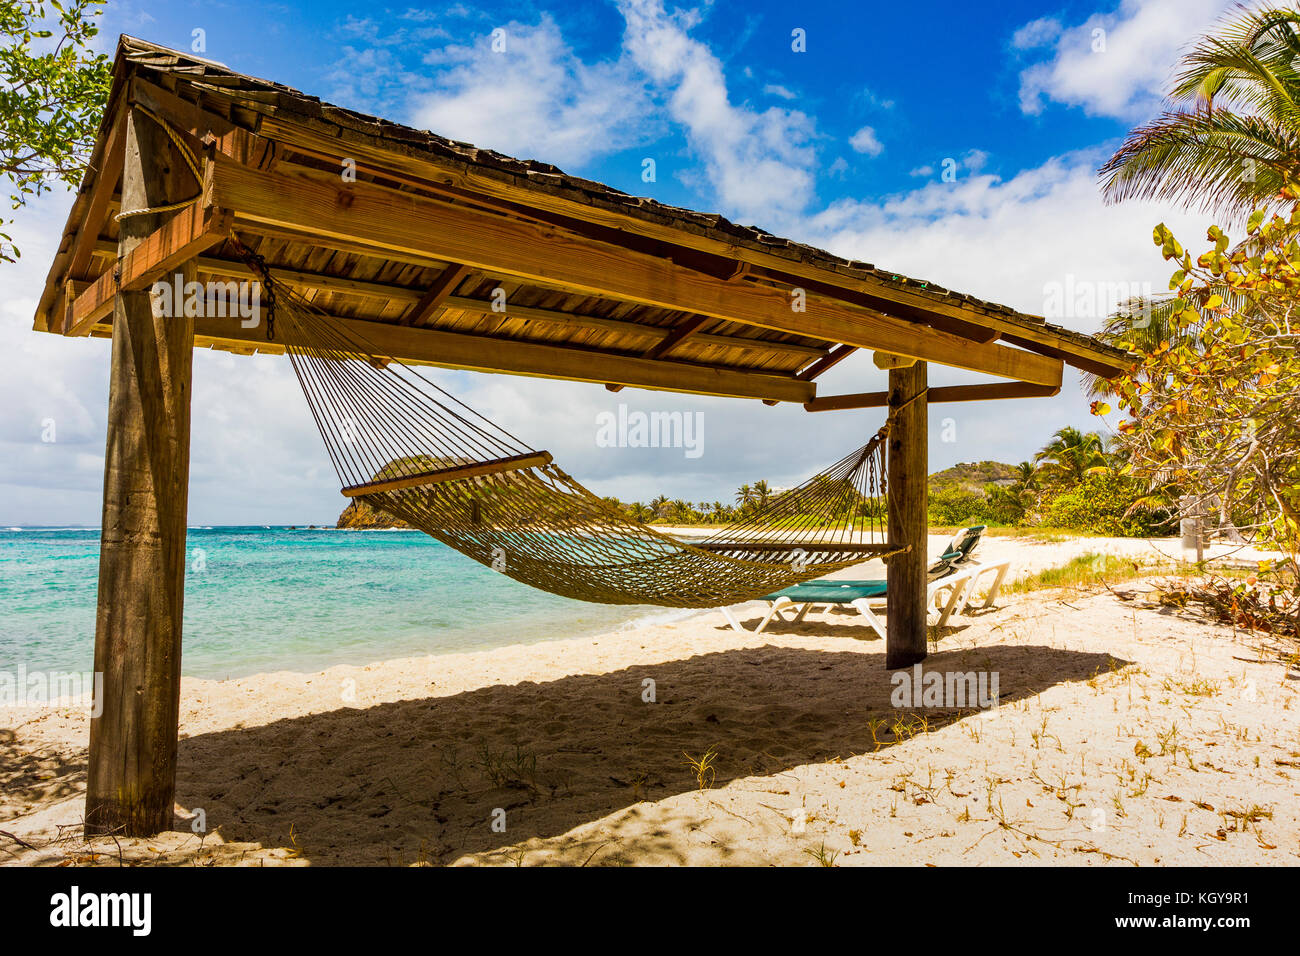 Island Palm Tree Hammock Resort Stock Photos Amp Island Palm